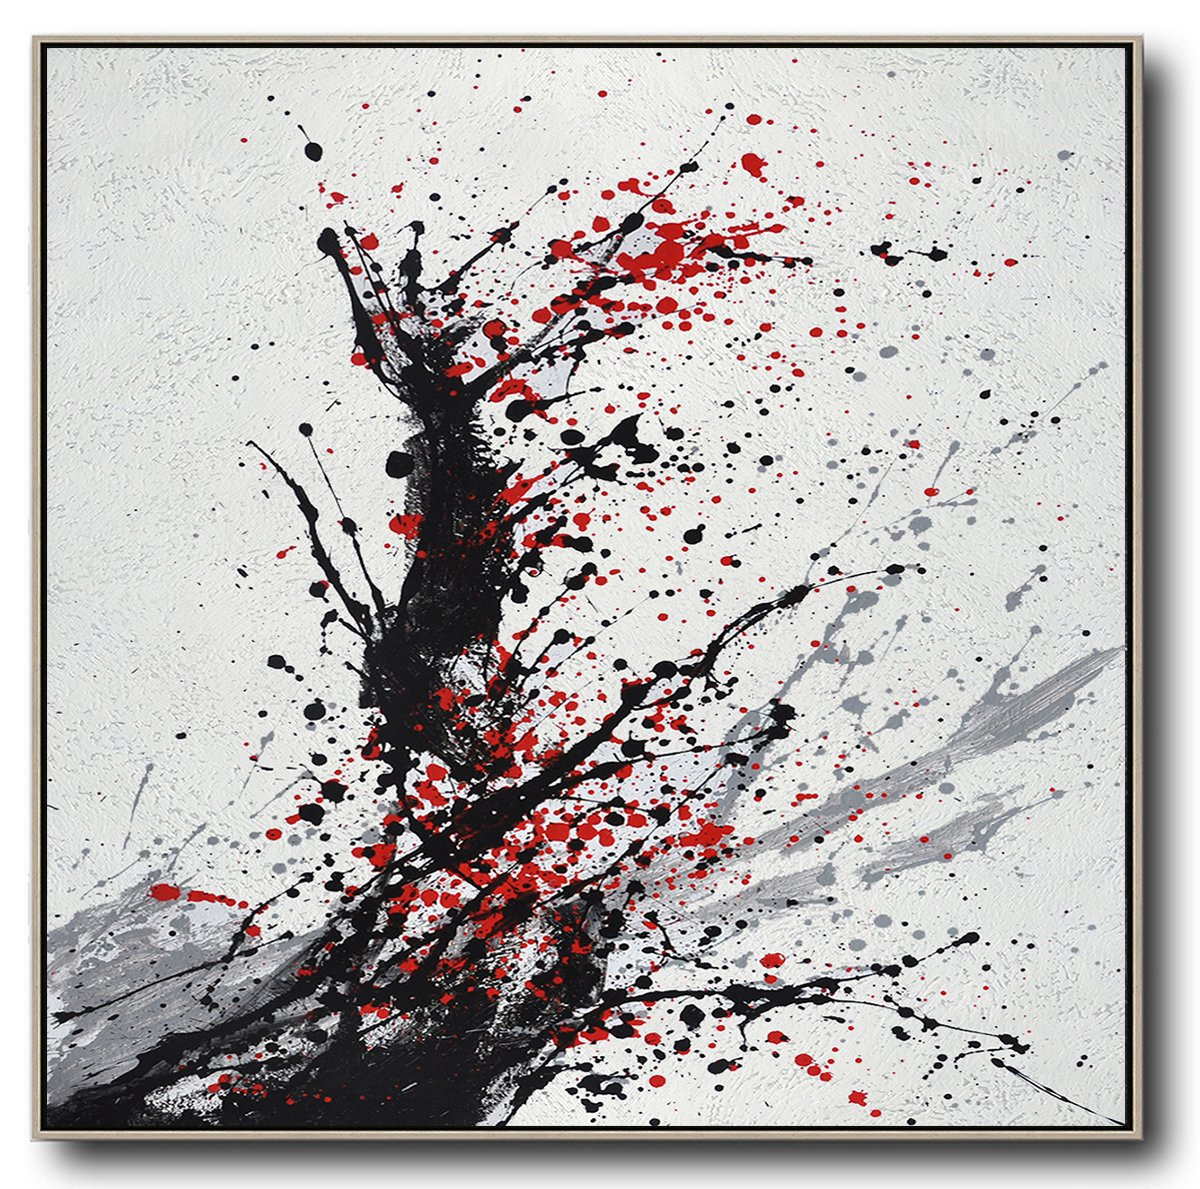 Original Abstract Painting Extra Large Canvas Art,Minimalist Drip Painting On Canvas, Black, White, Grey, Red - Modern Art Abstract Painting